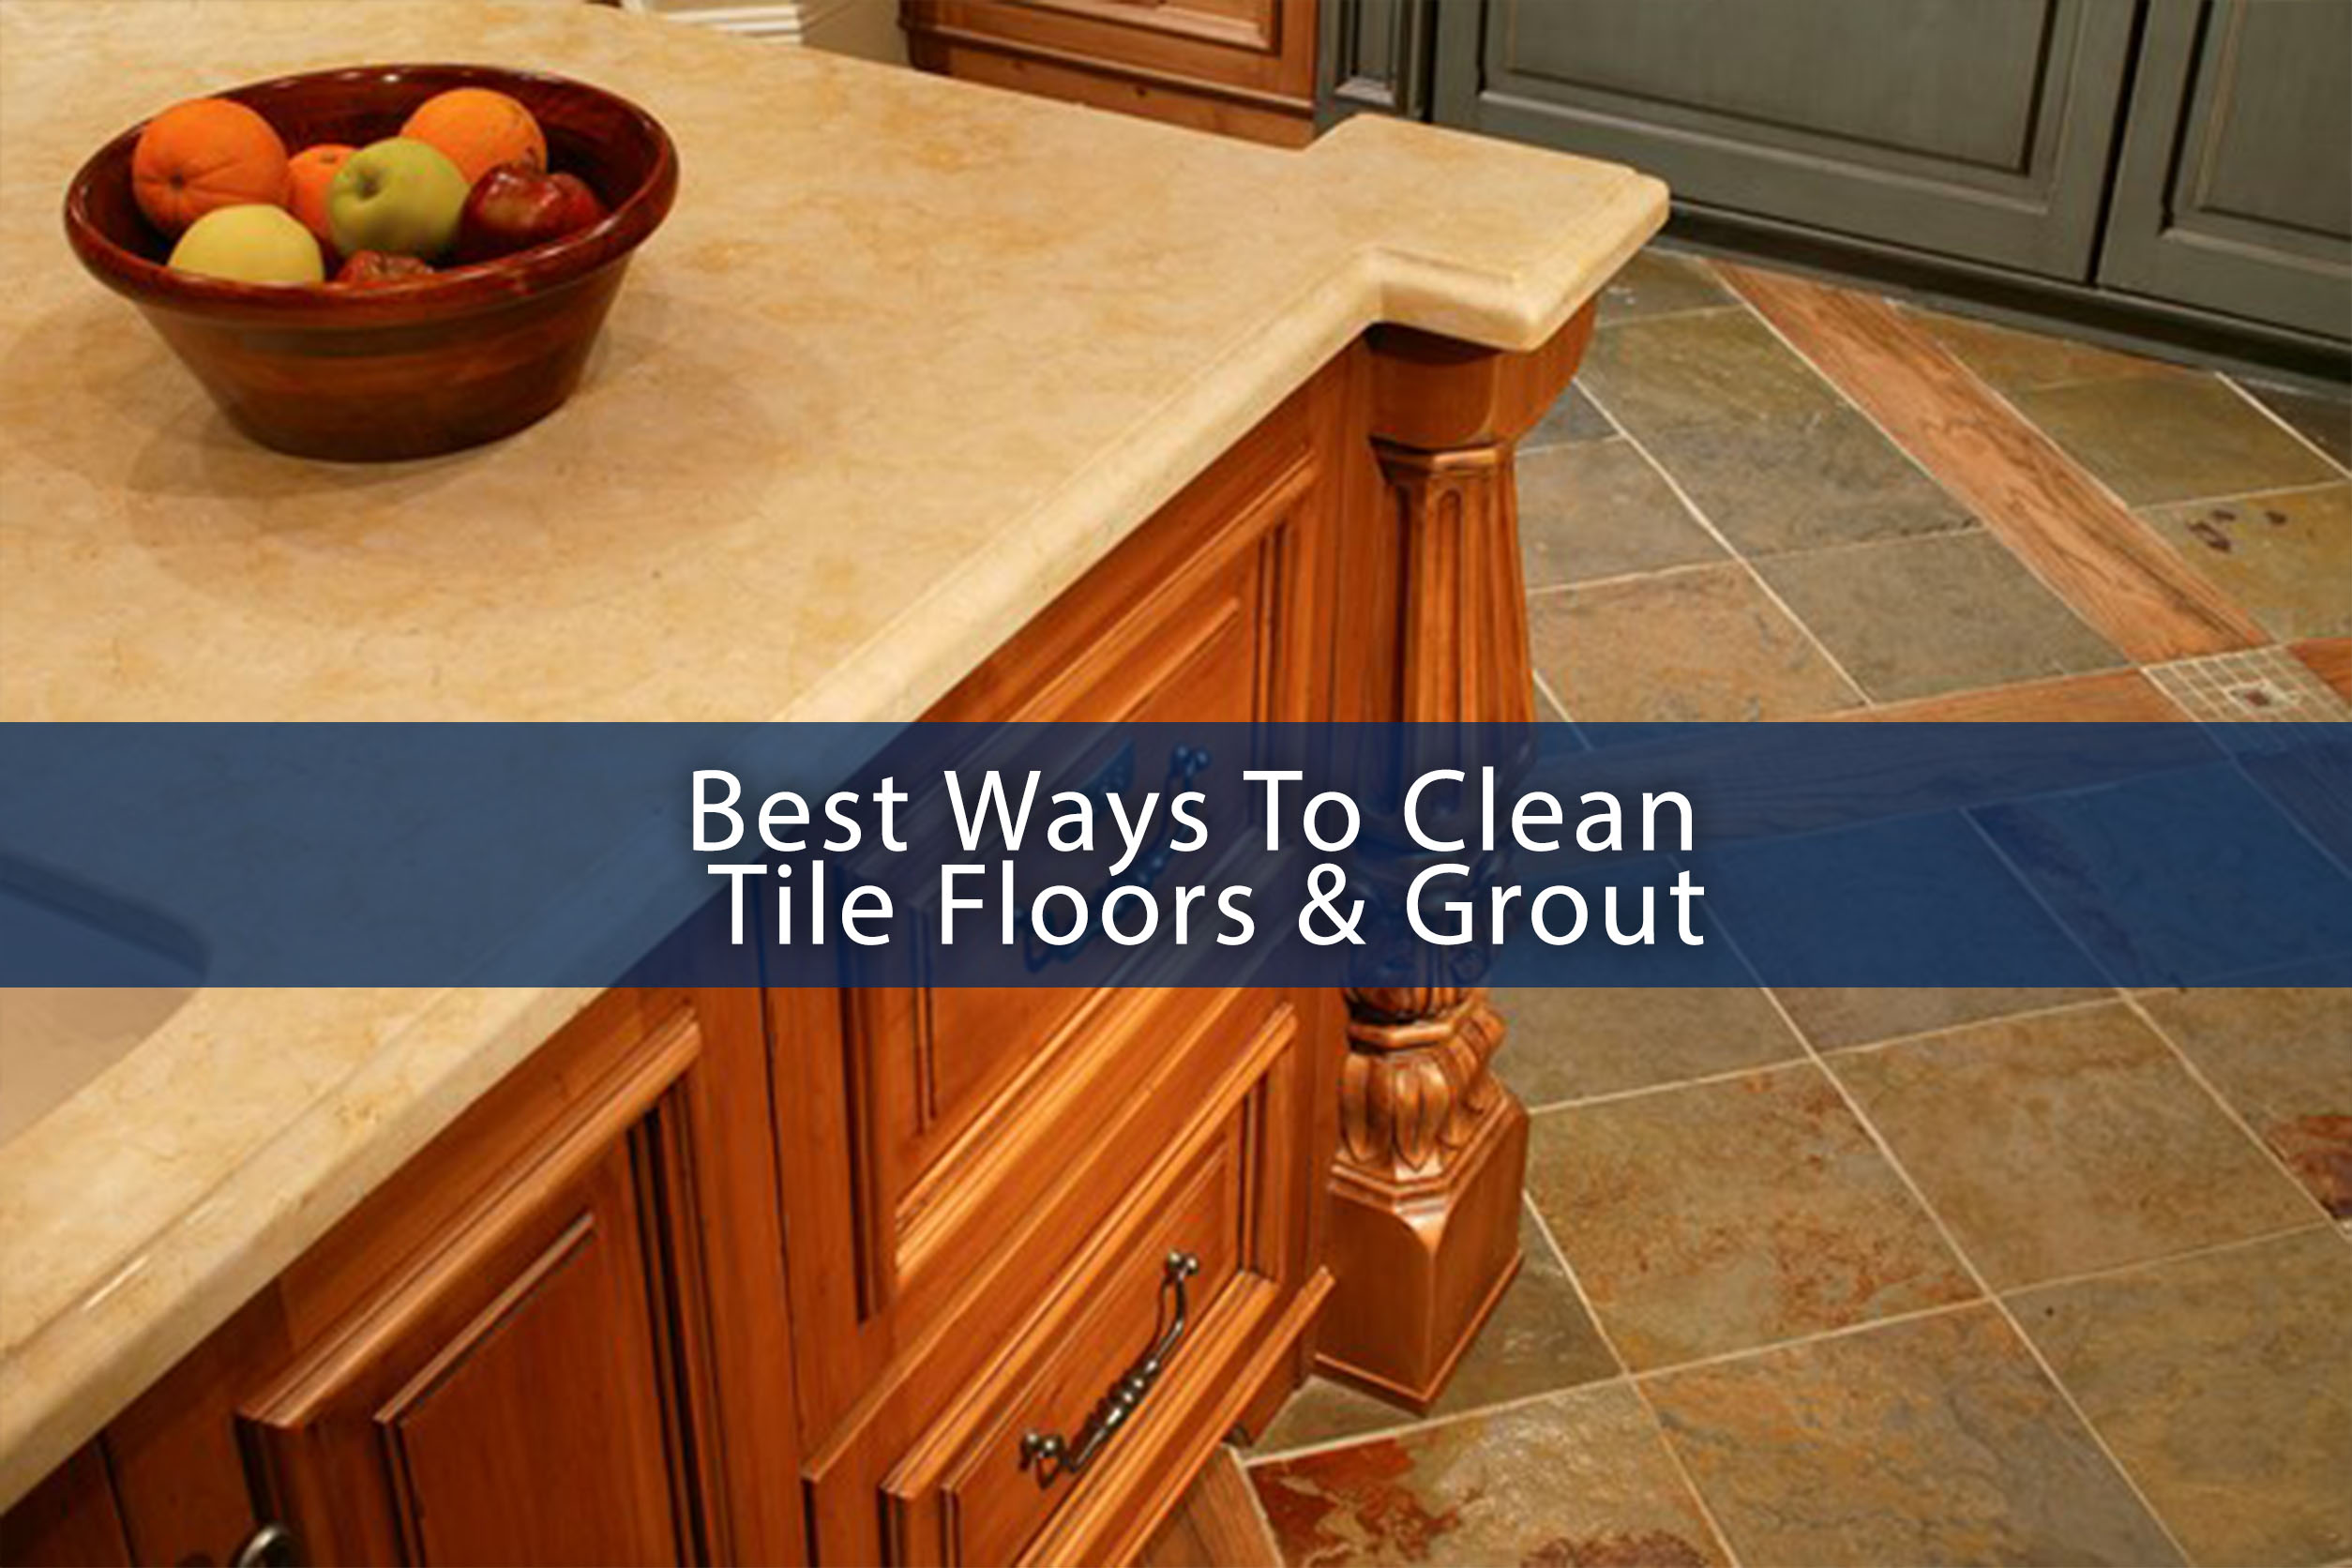 Best ways to clean tile floors grout abm custom homes dailygadgetfo Gallery